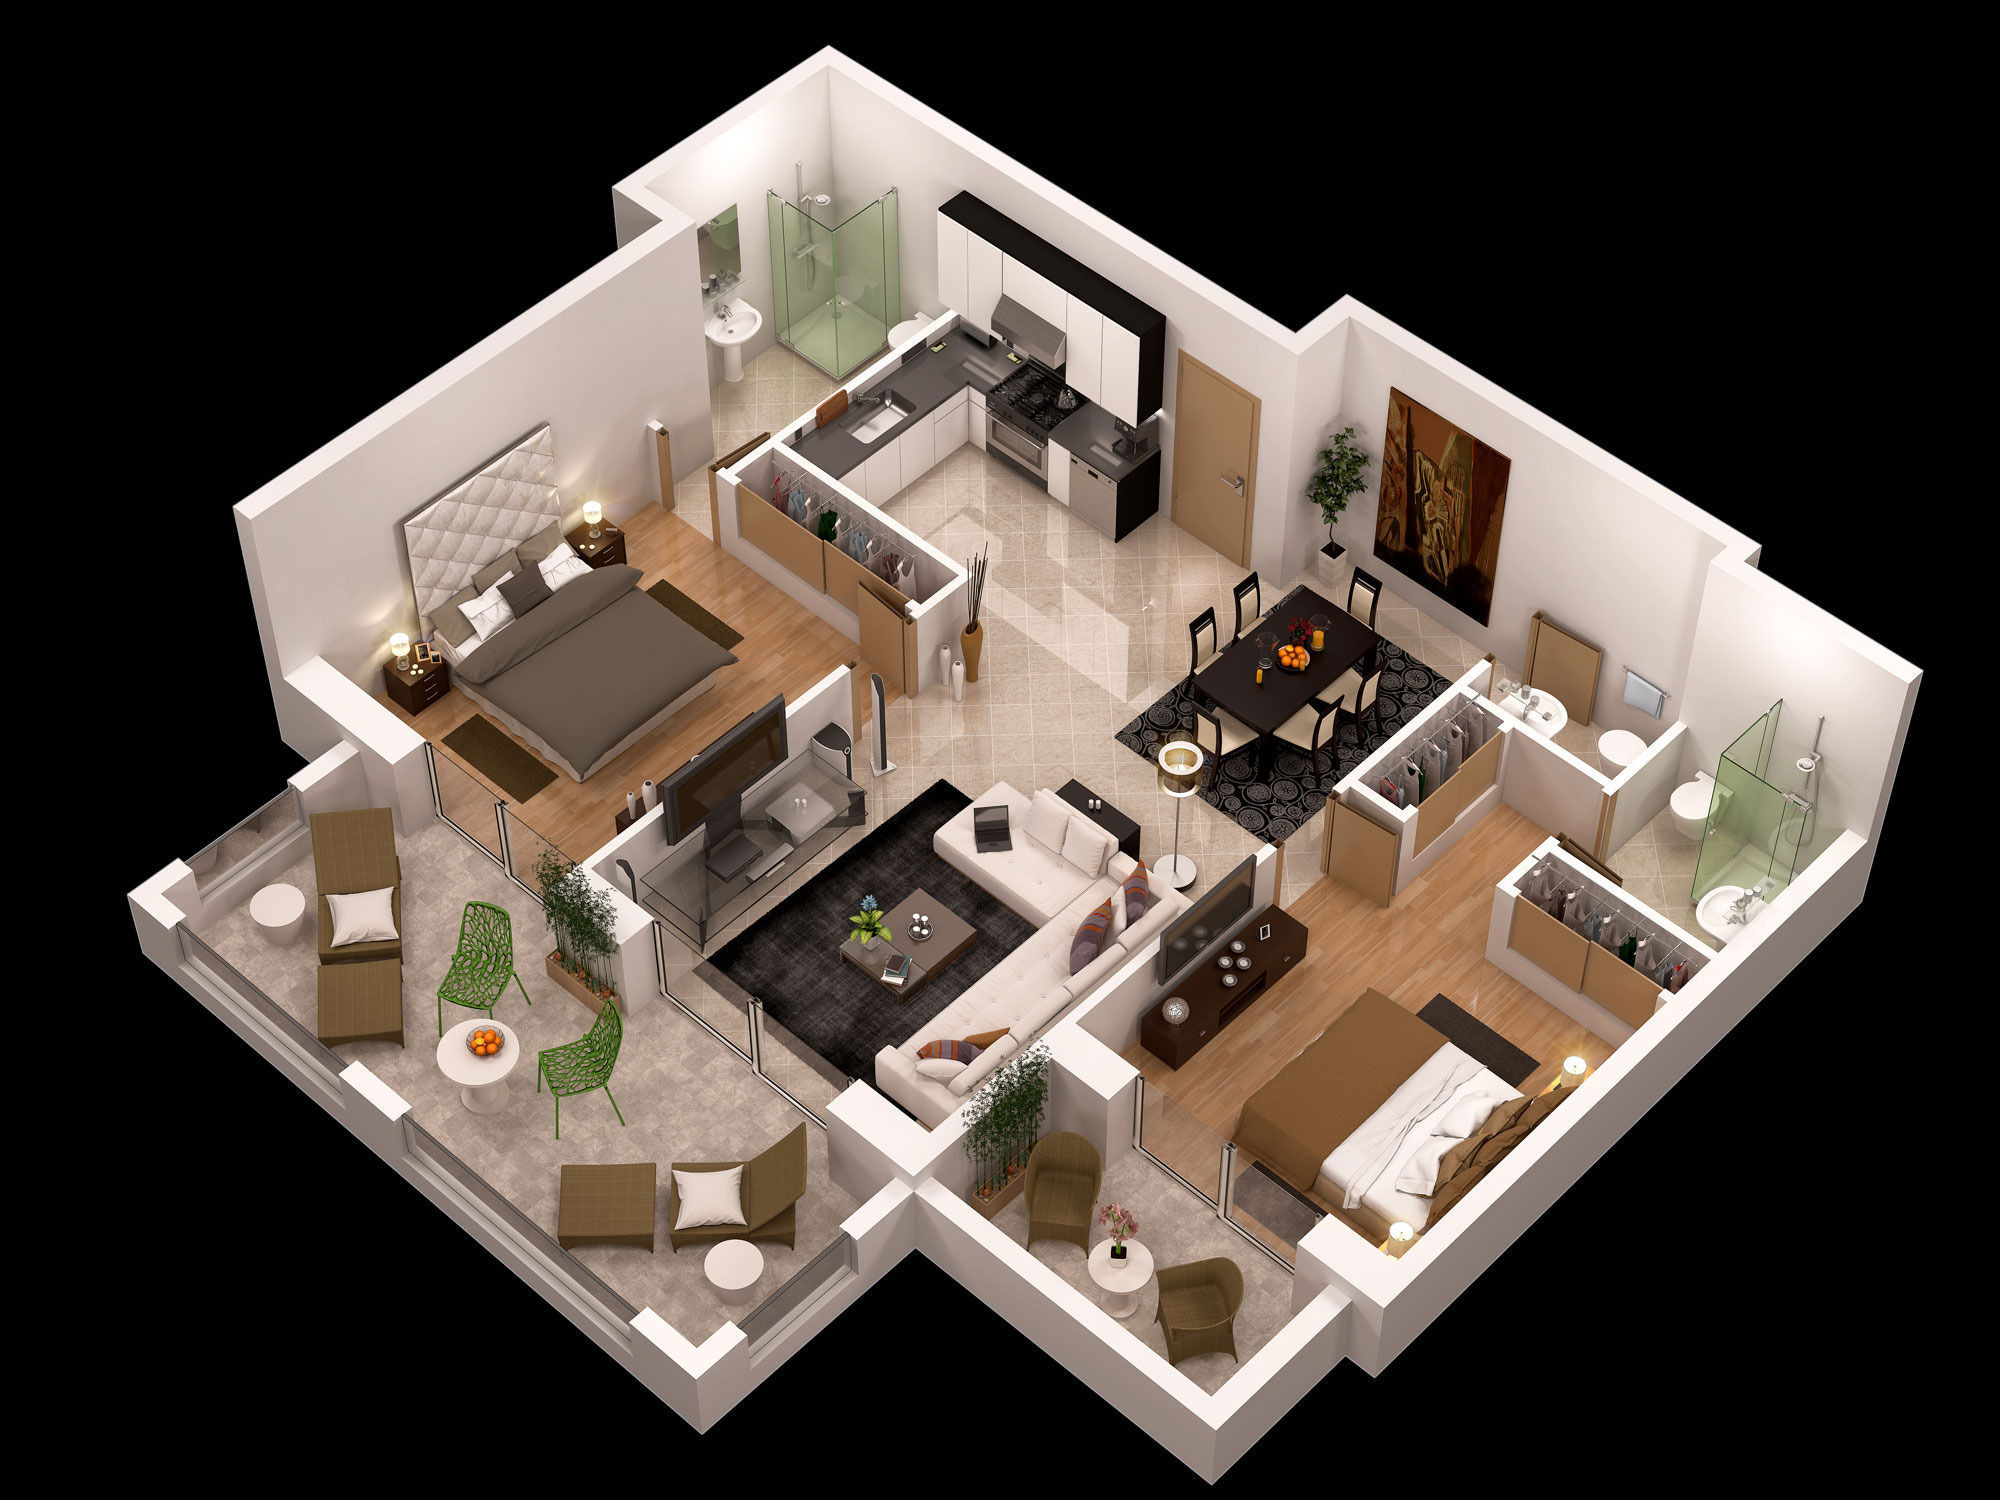 Detailed floor plan 3d 3d model max obj 3d model house design